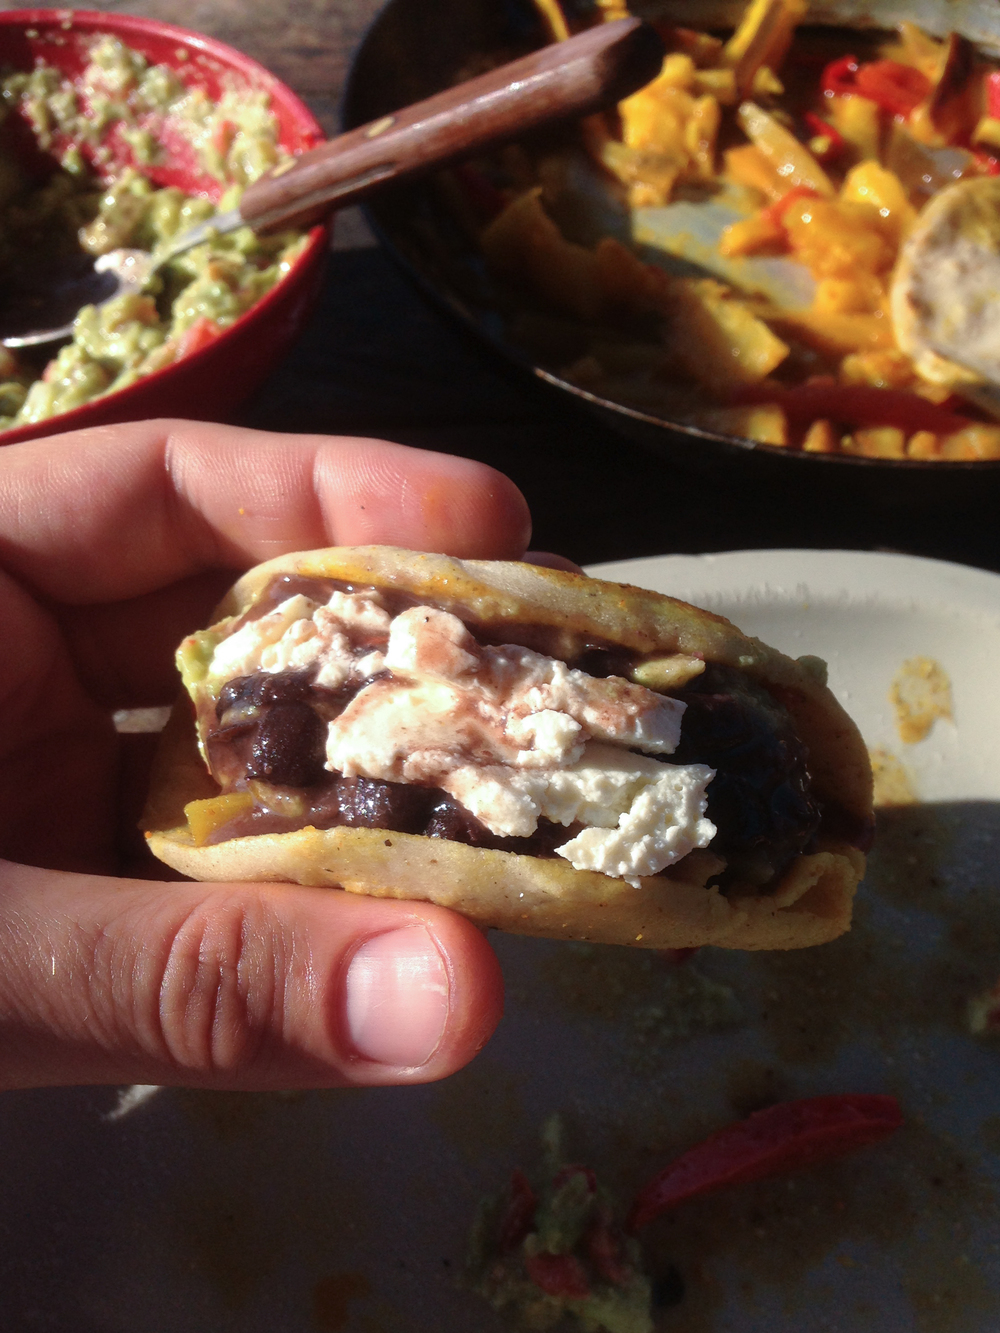 Tortillas in Guatemala and Honduras are meant to beedible utensils, not tacos, but whatever.